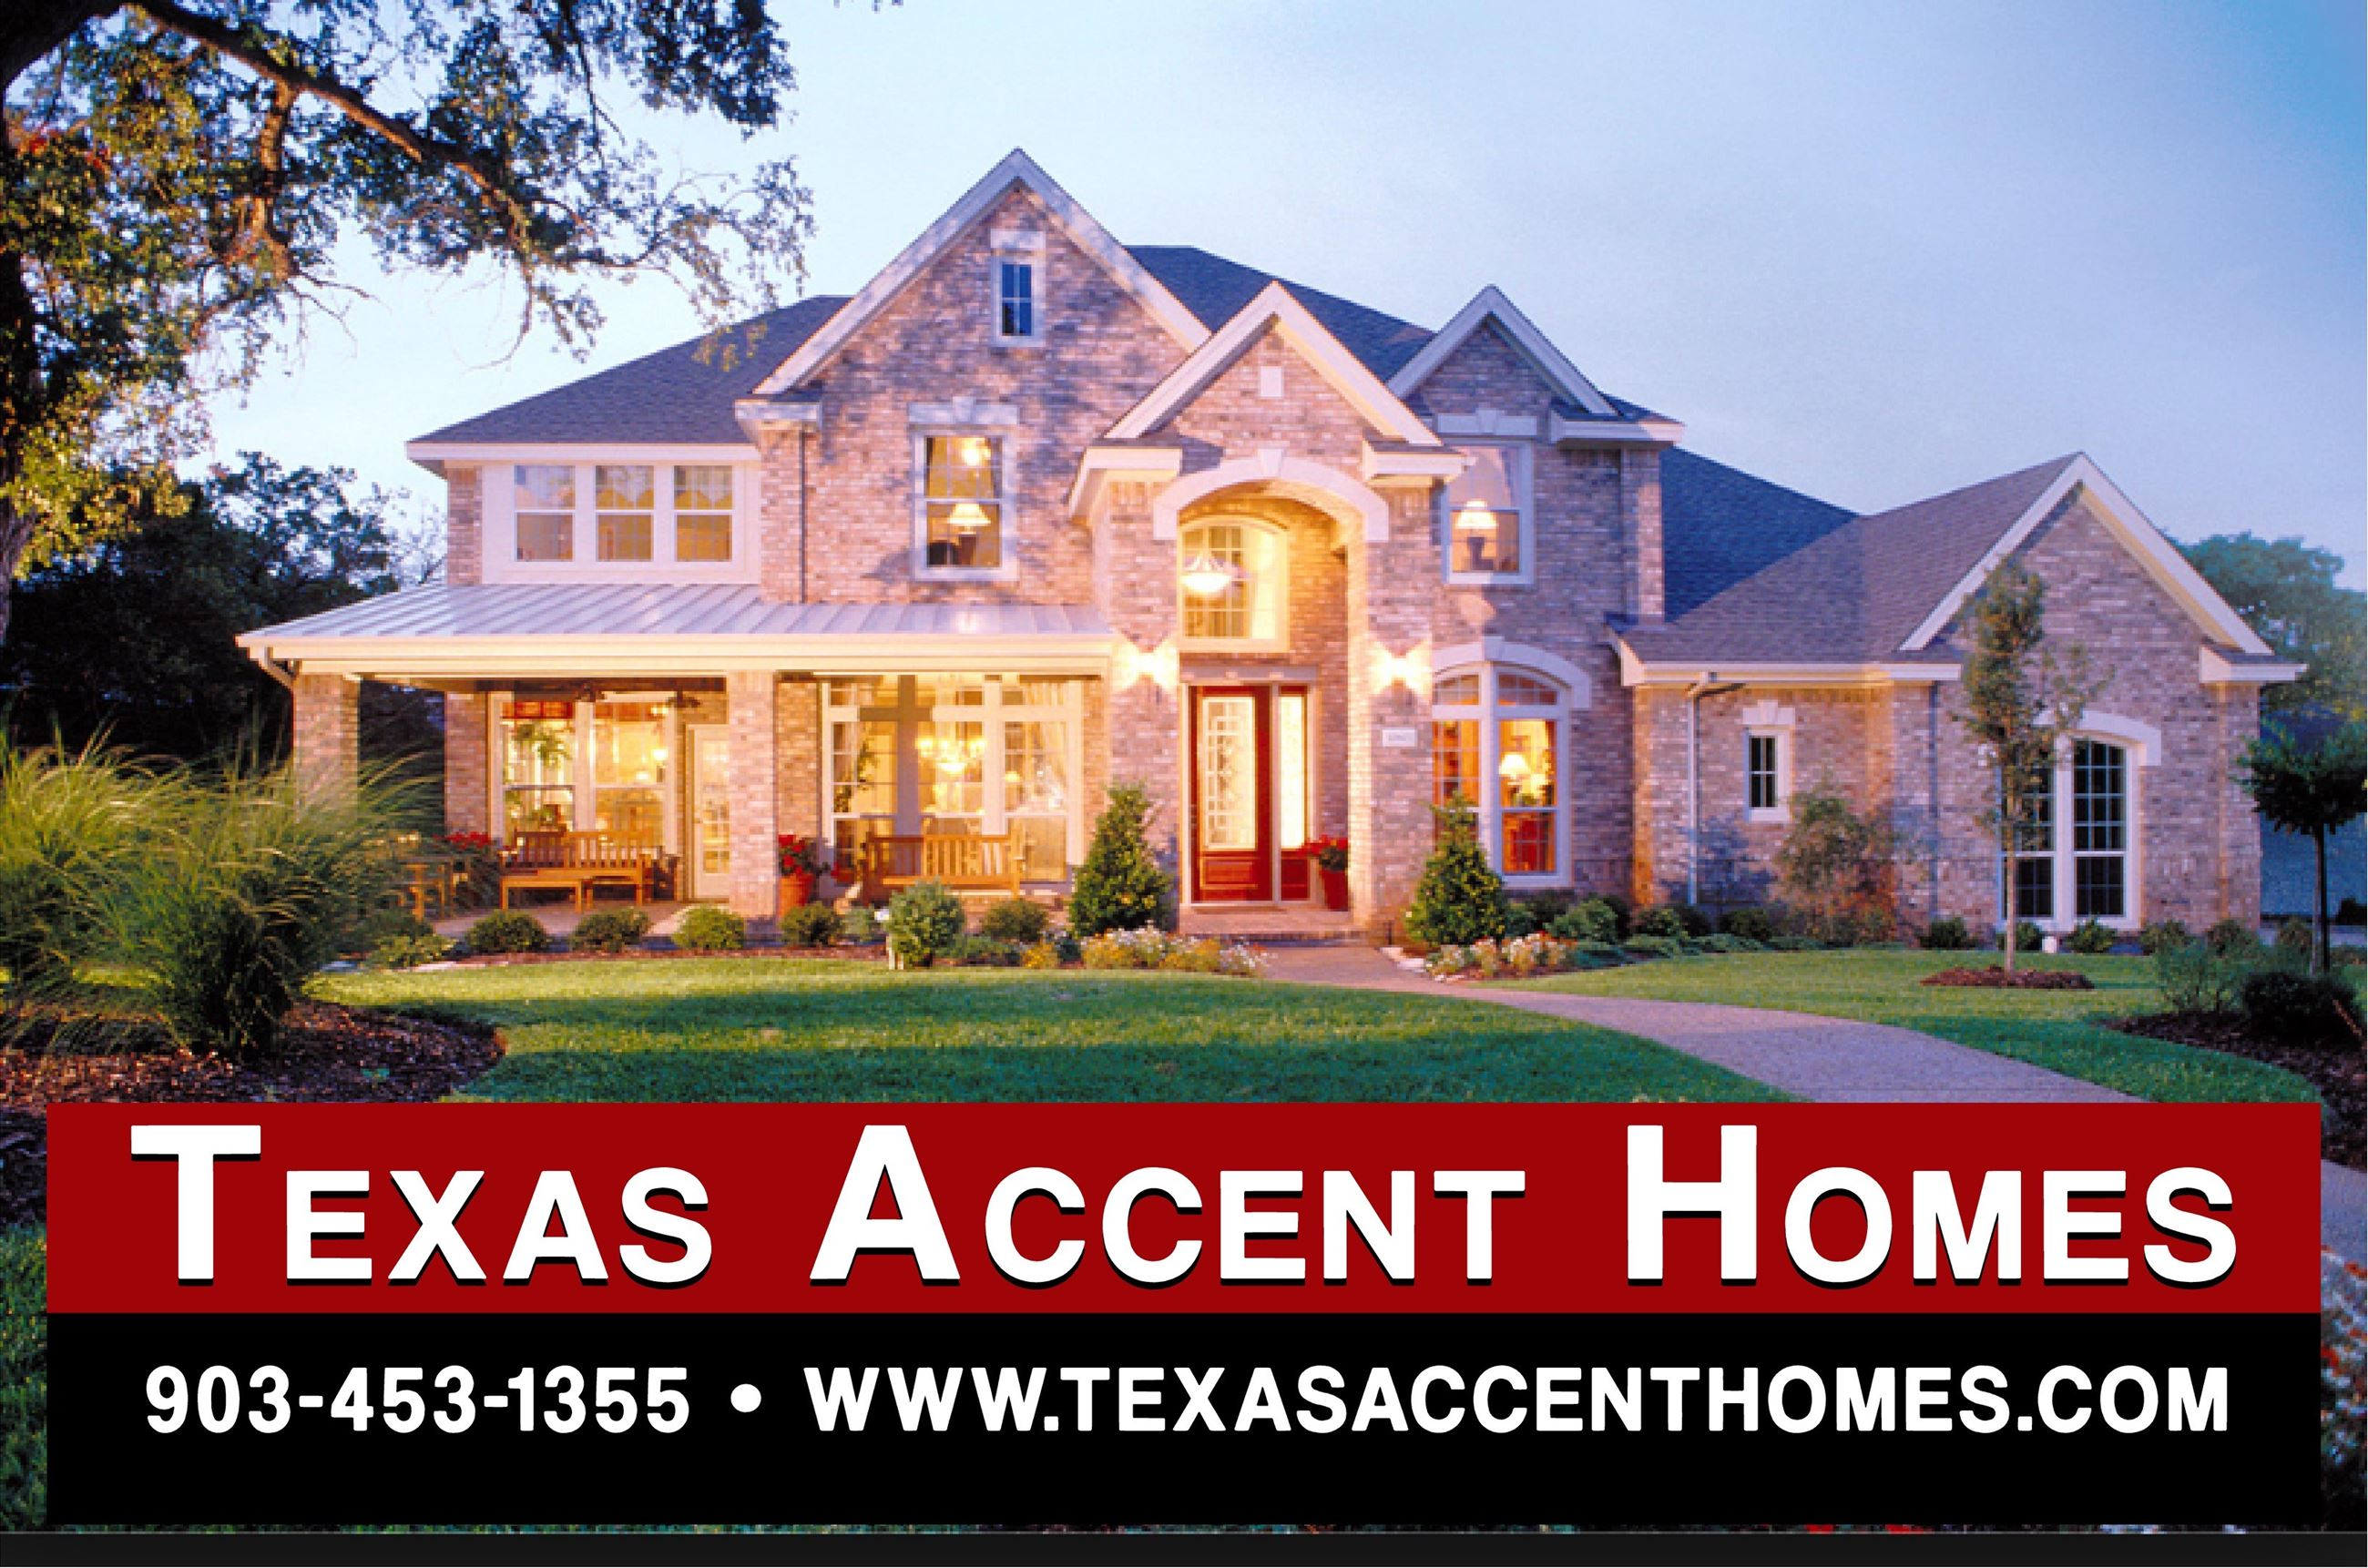 Texas Accent Homes